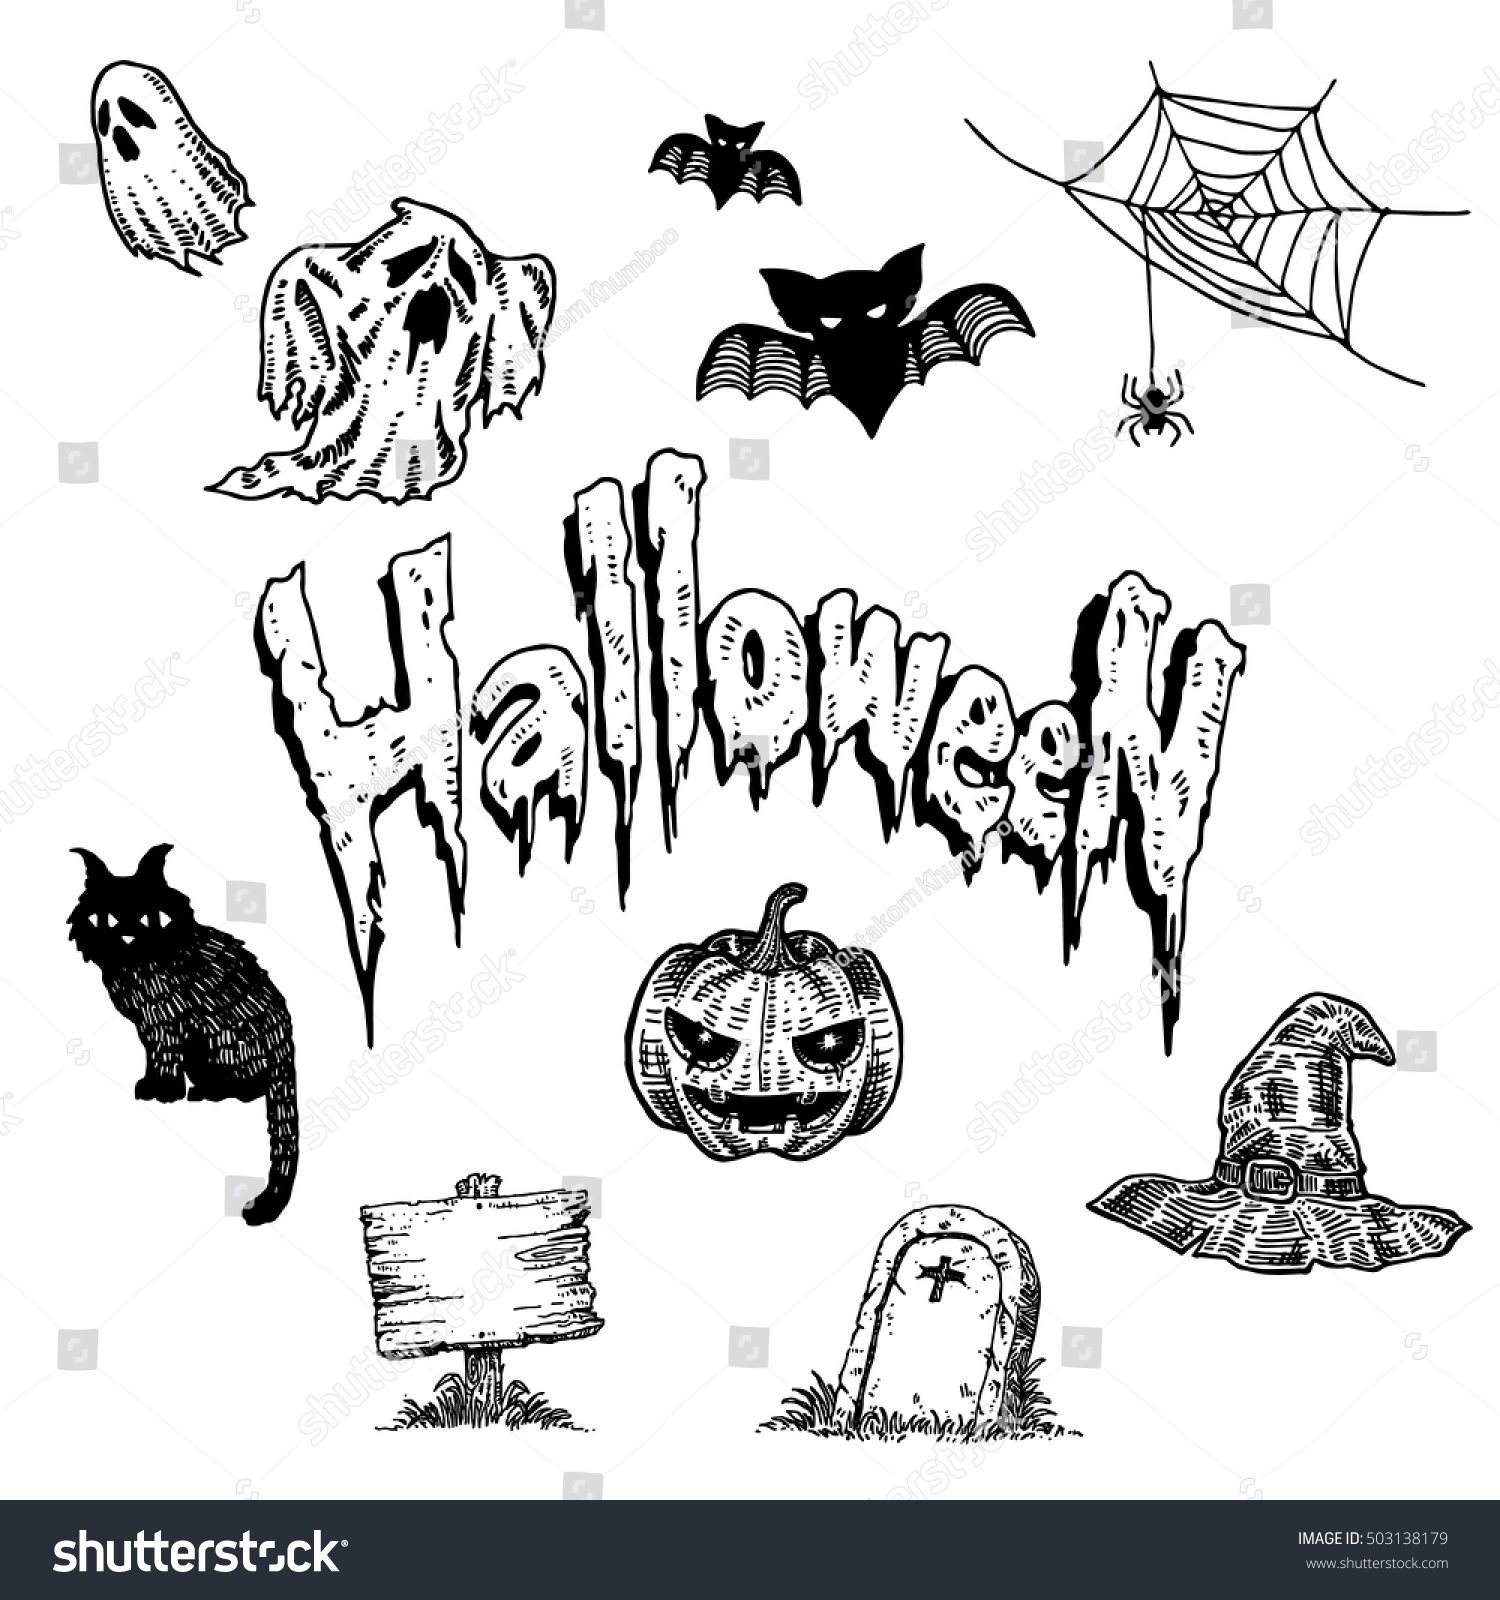 vintage black white hand draw halloween stock vector (royalty free